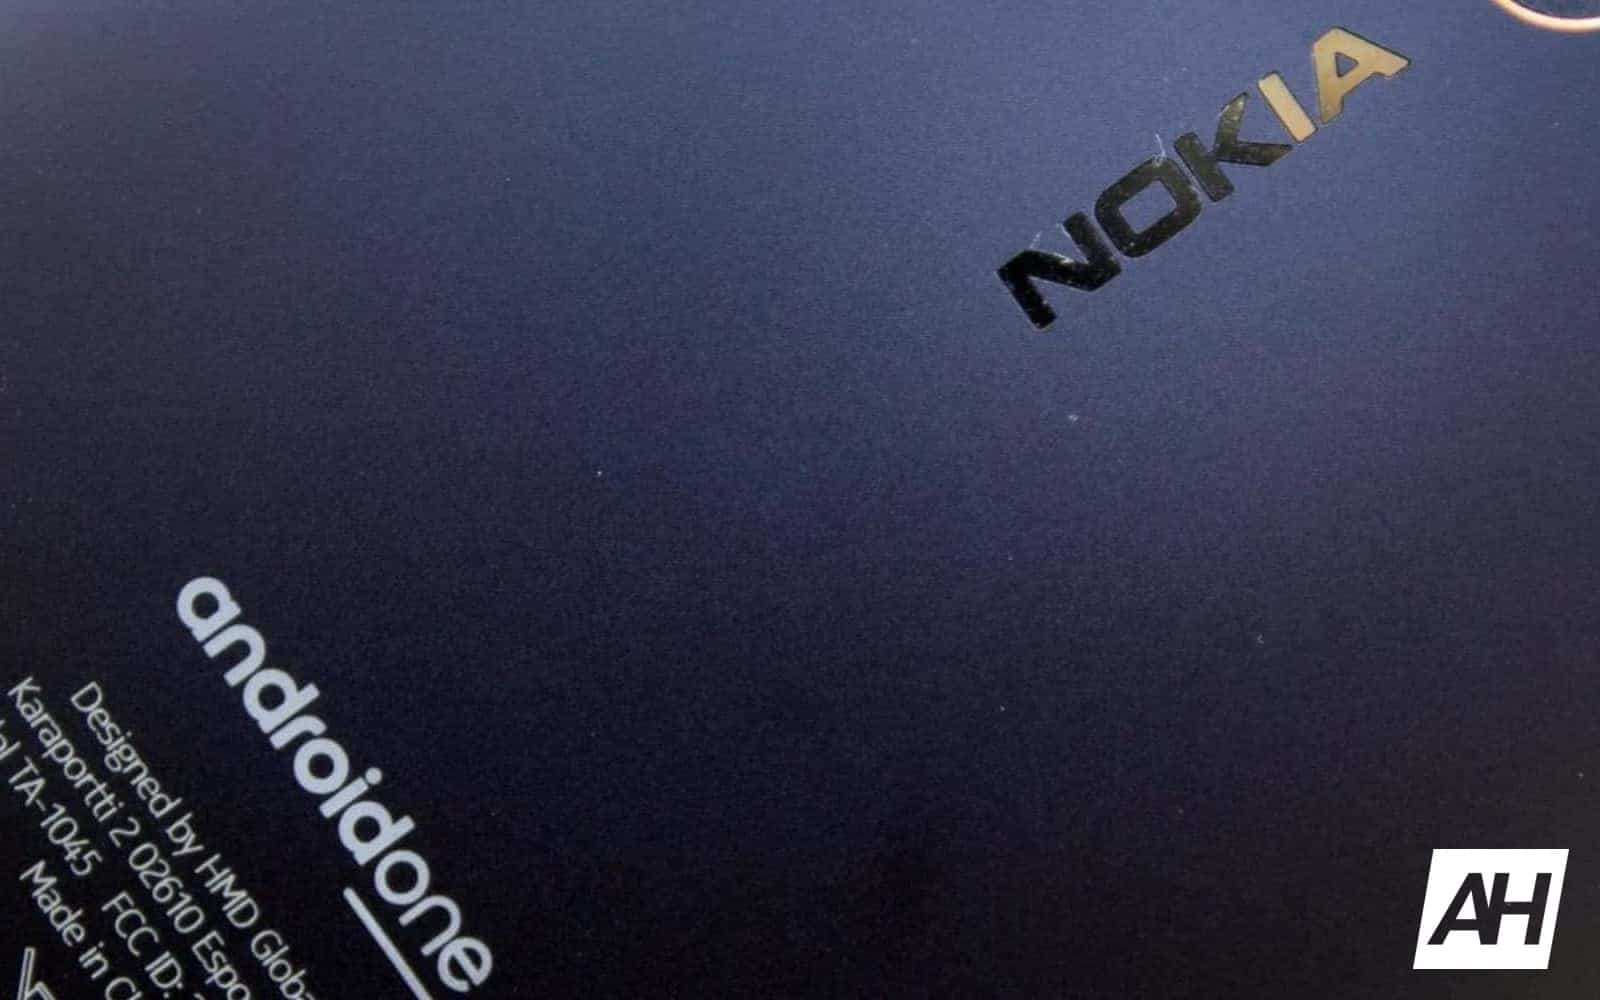 Nokia 6.1 AH NS 08 android one AH 2019